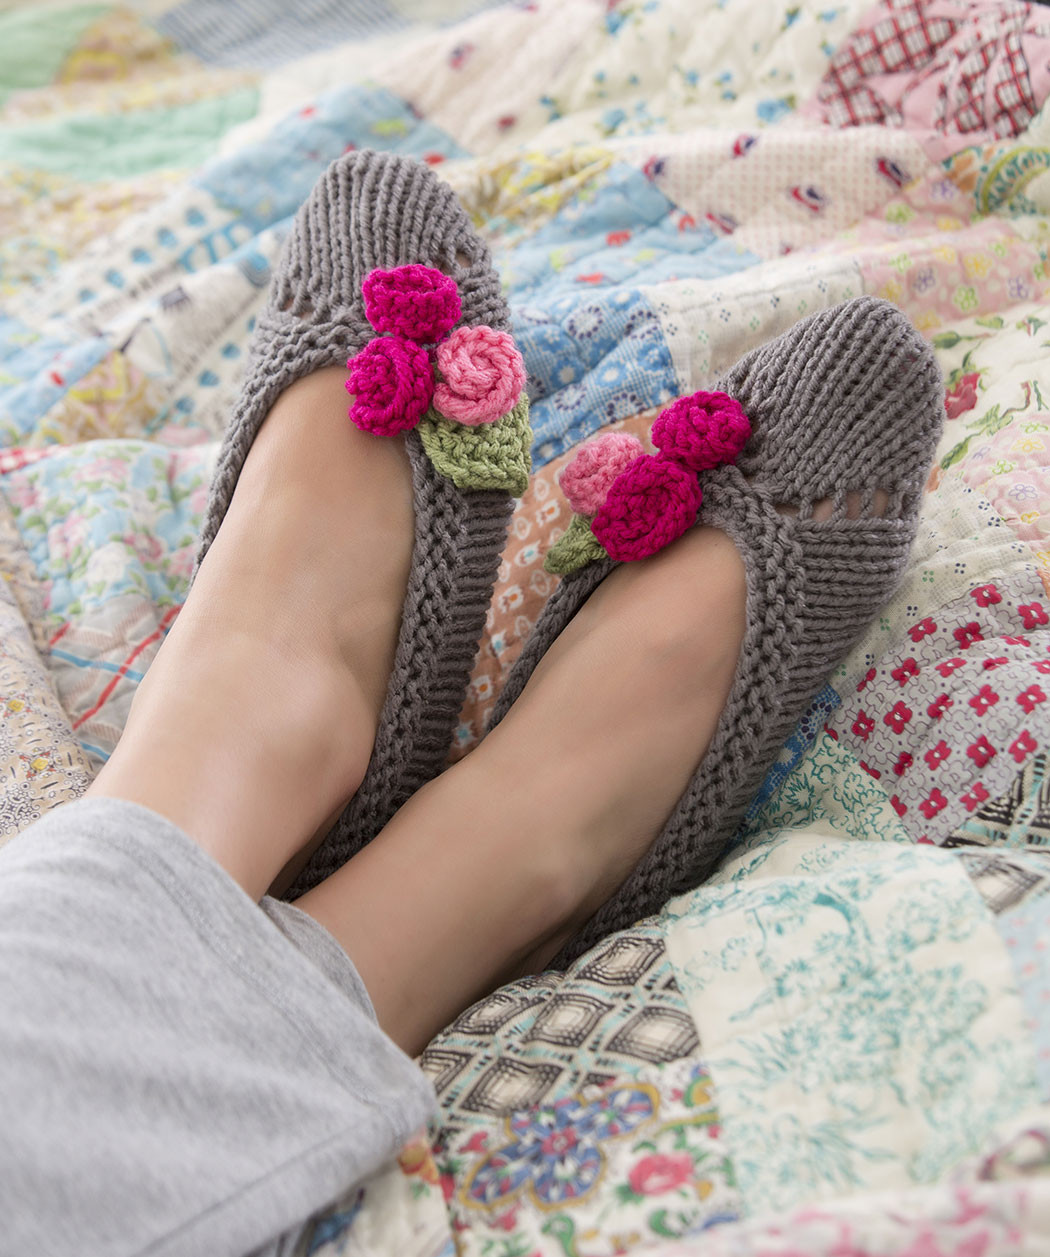 Free Crochet Slipper Patterns Unique Knitted Slipper Patterns Of Amazing 50 Models Free Crochet Slipper Patterns